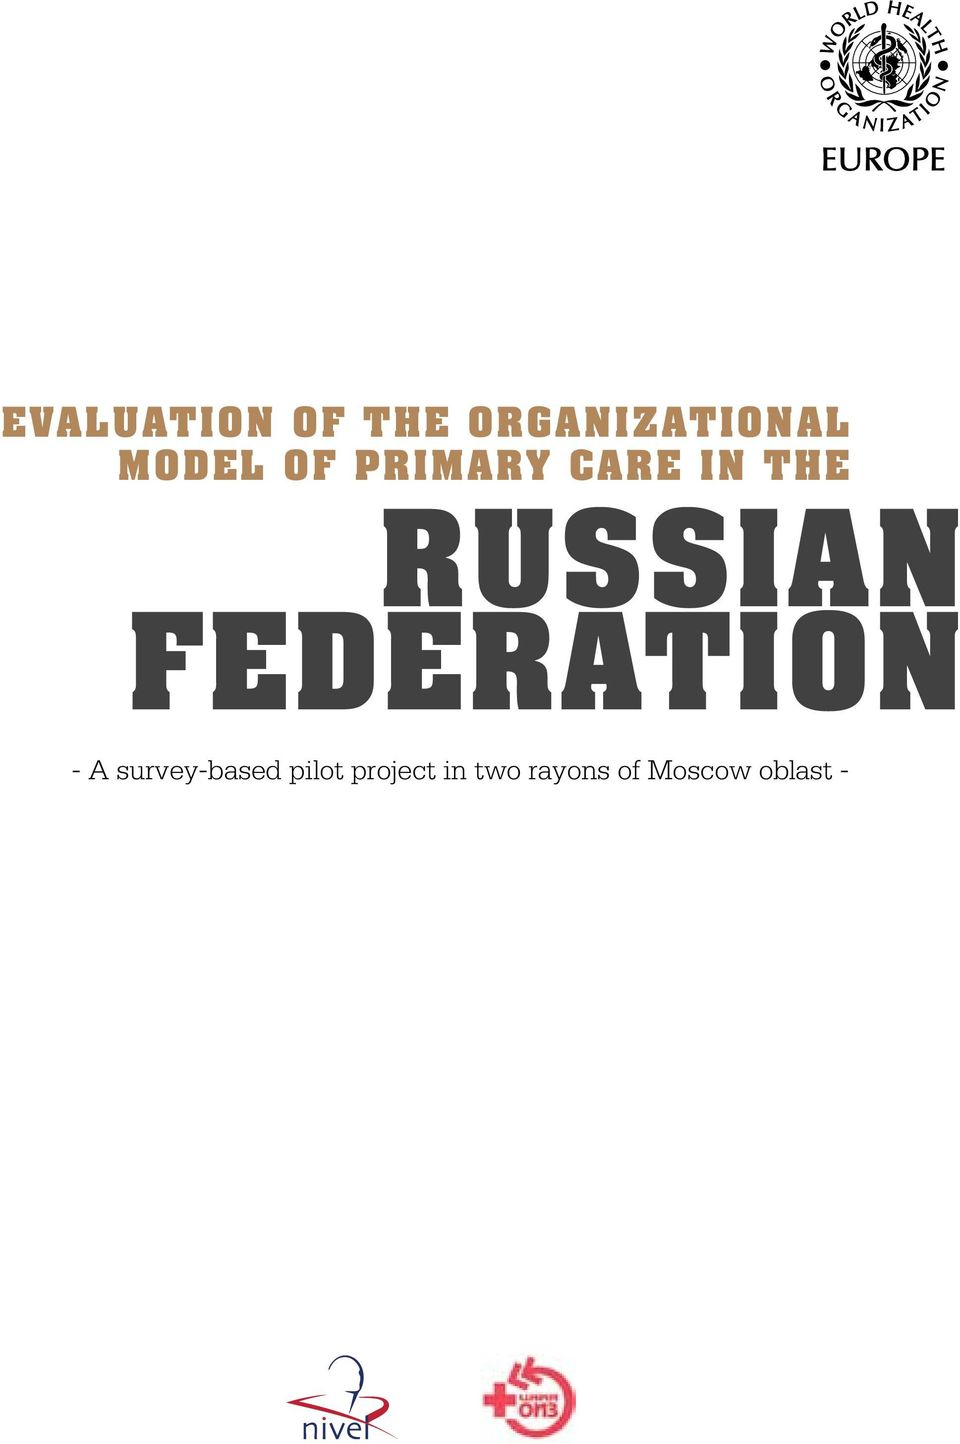 russian federation - A survey-based